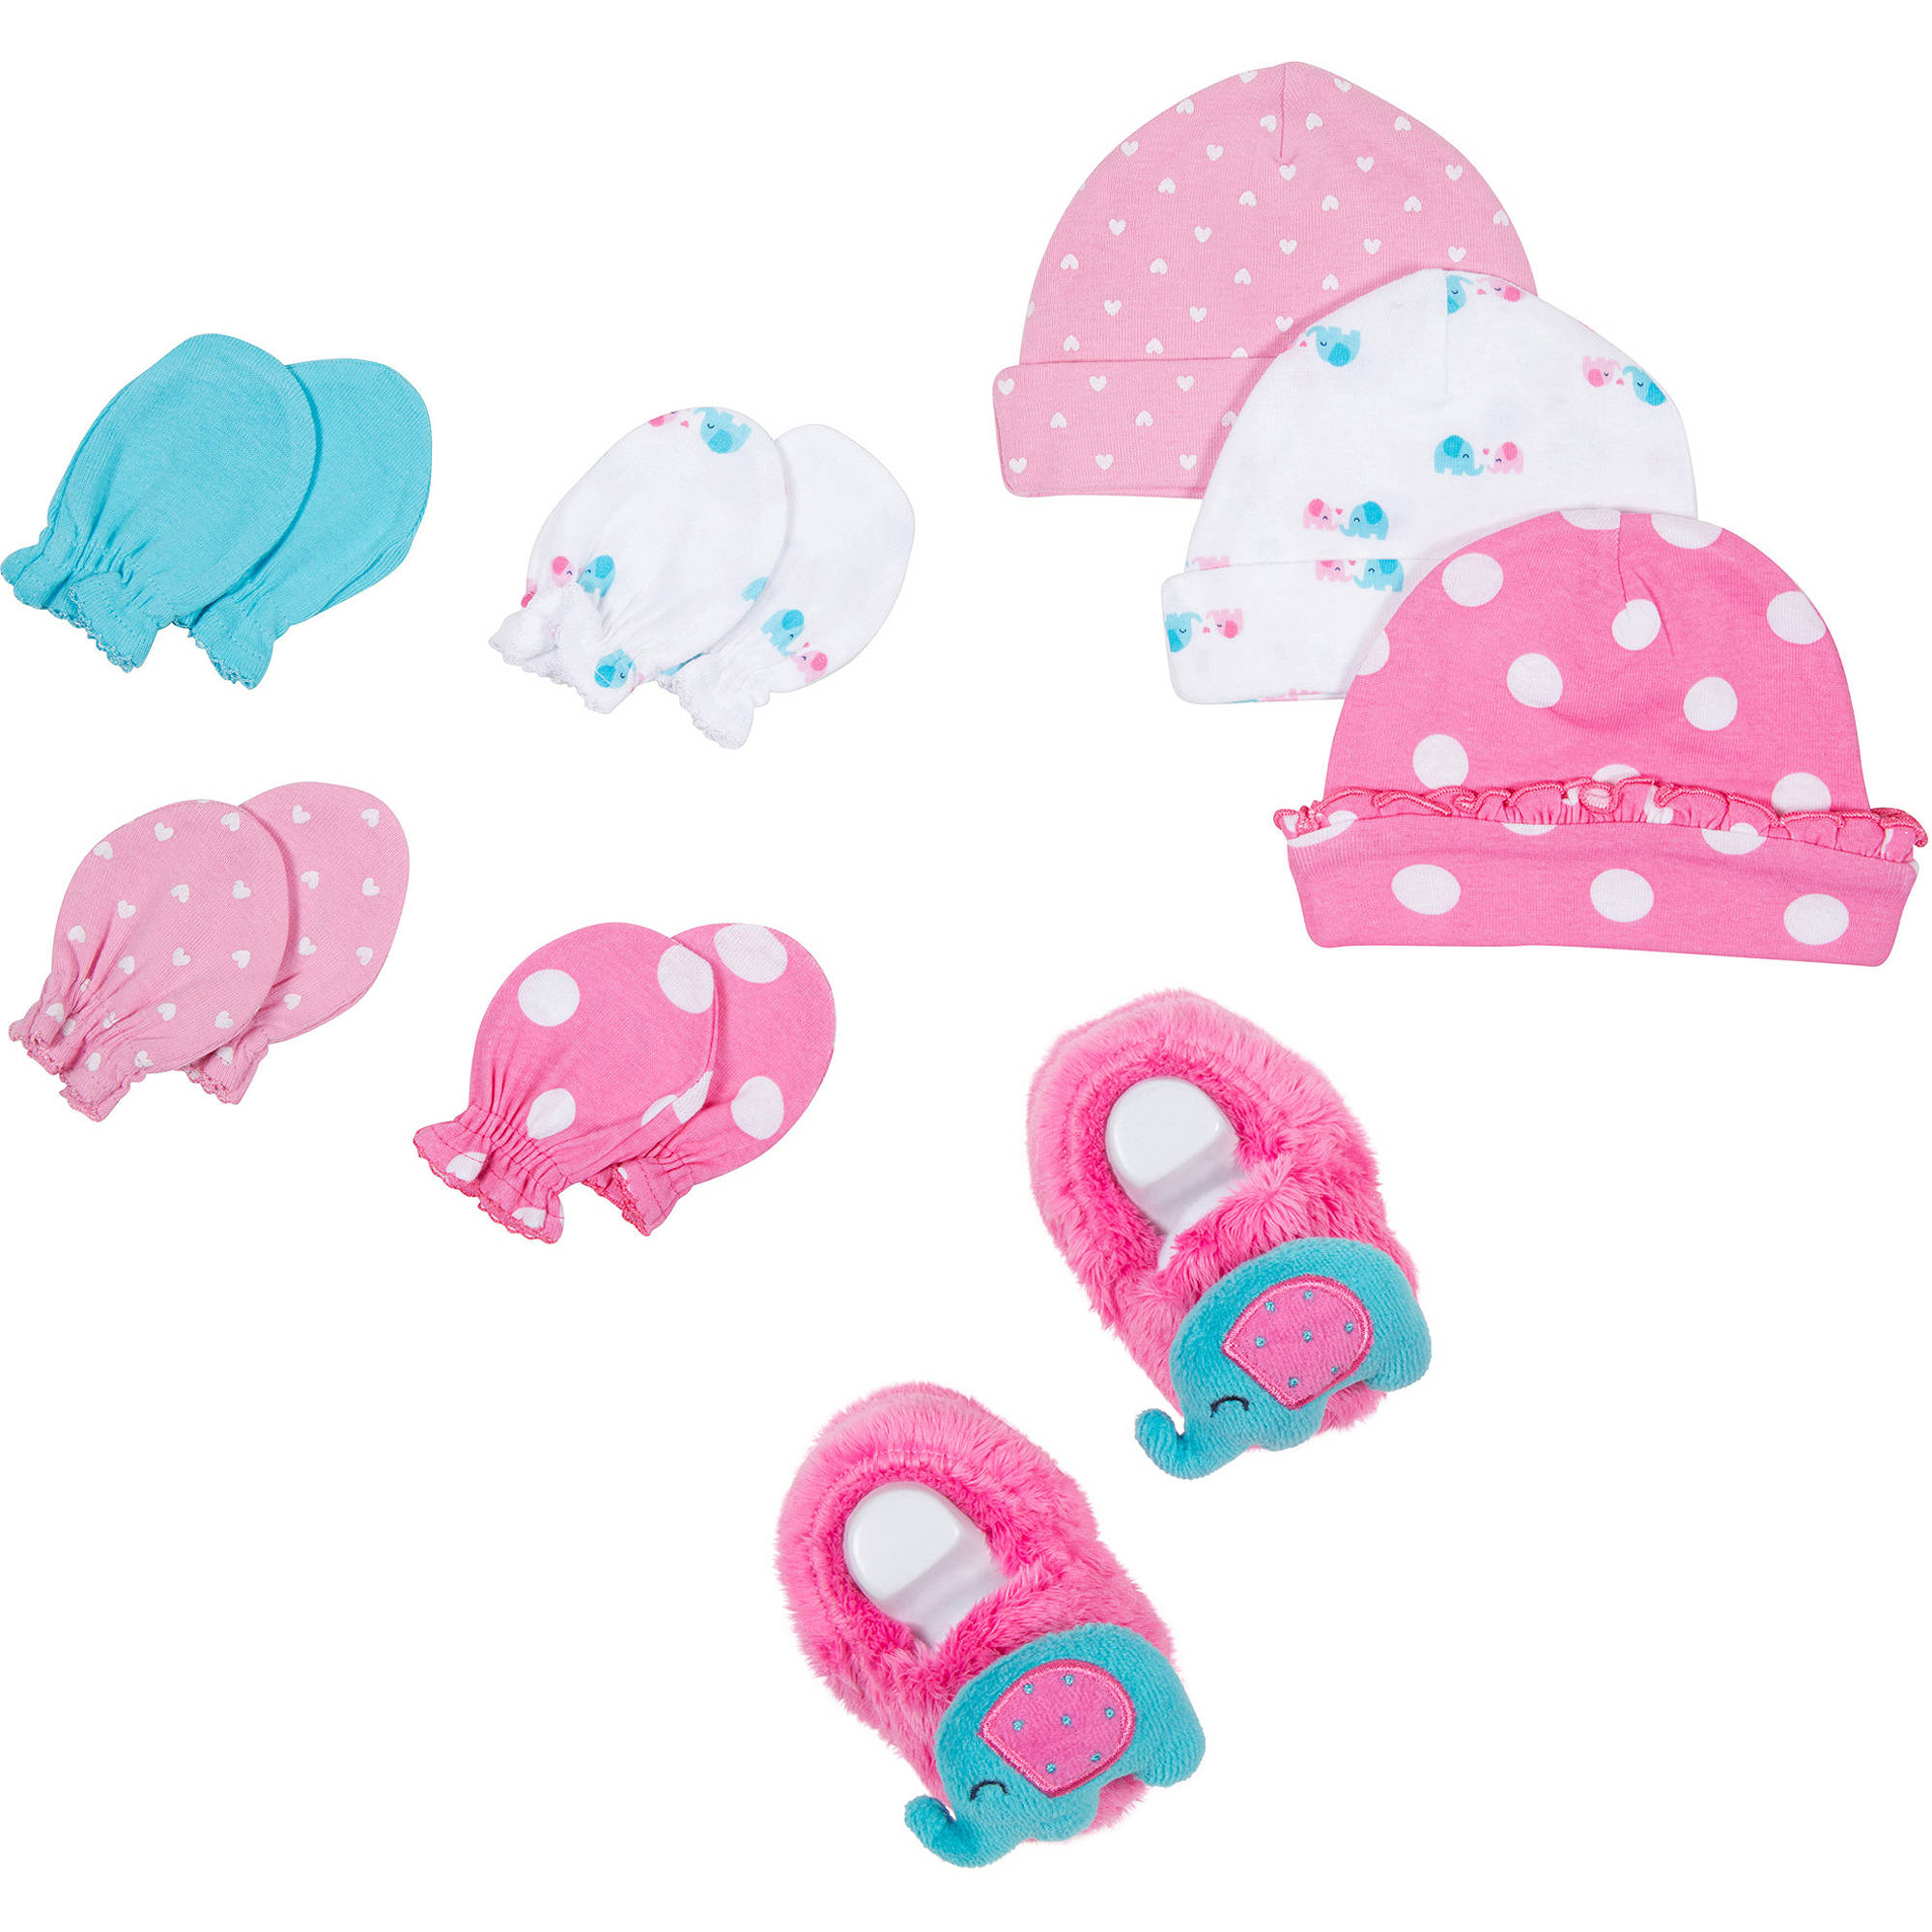 Newborn Baby Girl Cap, Mitten and Booties Accessory Set, 8-Piece